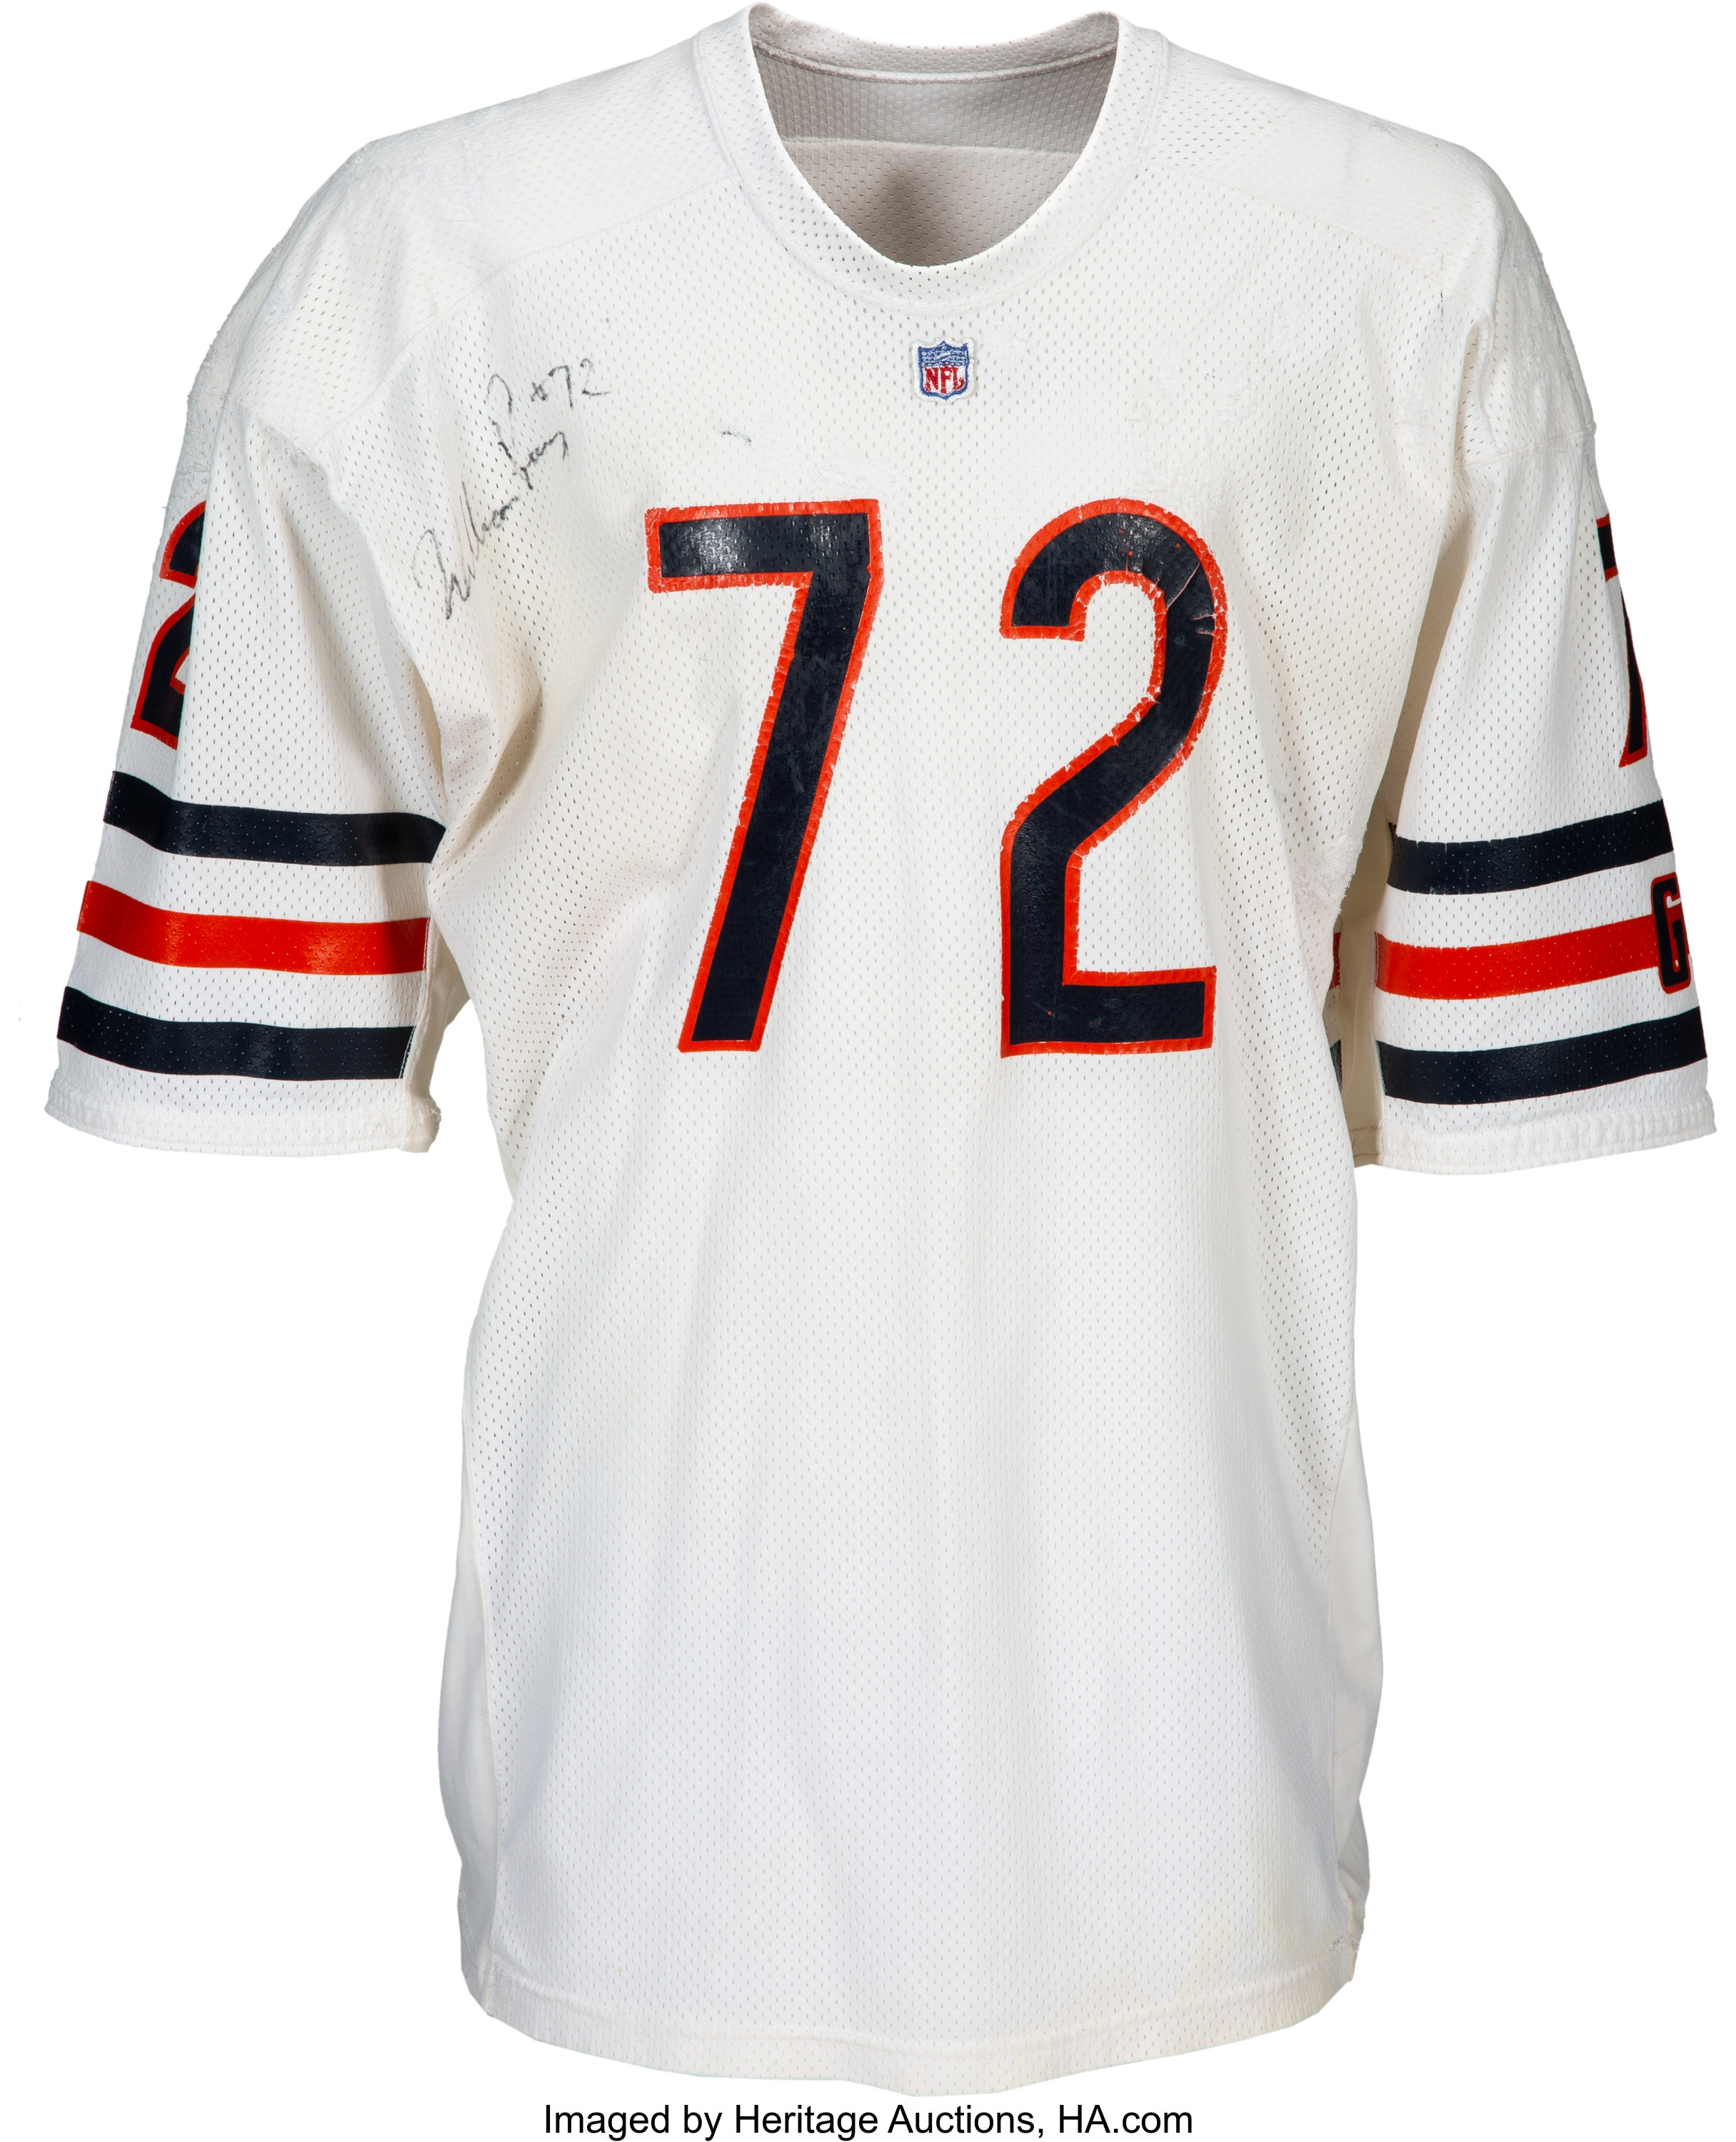 perry jersey